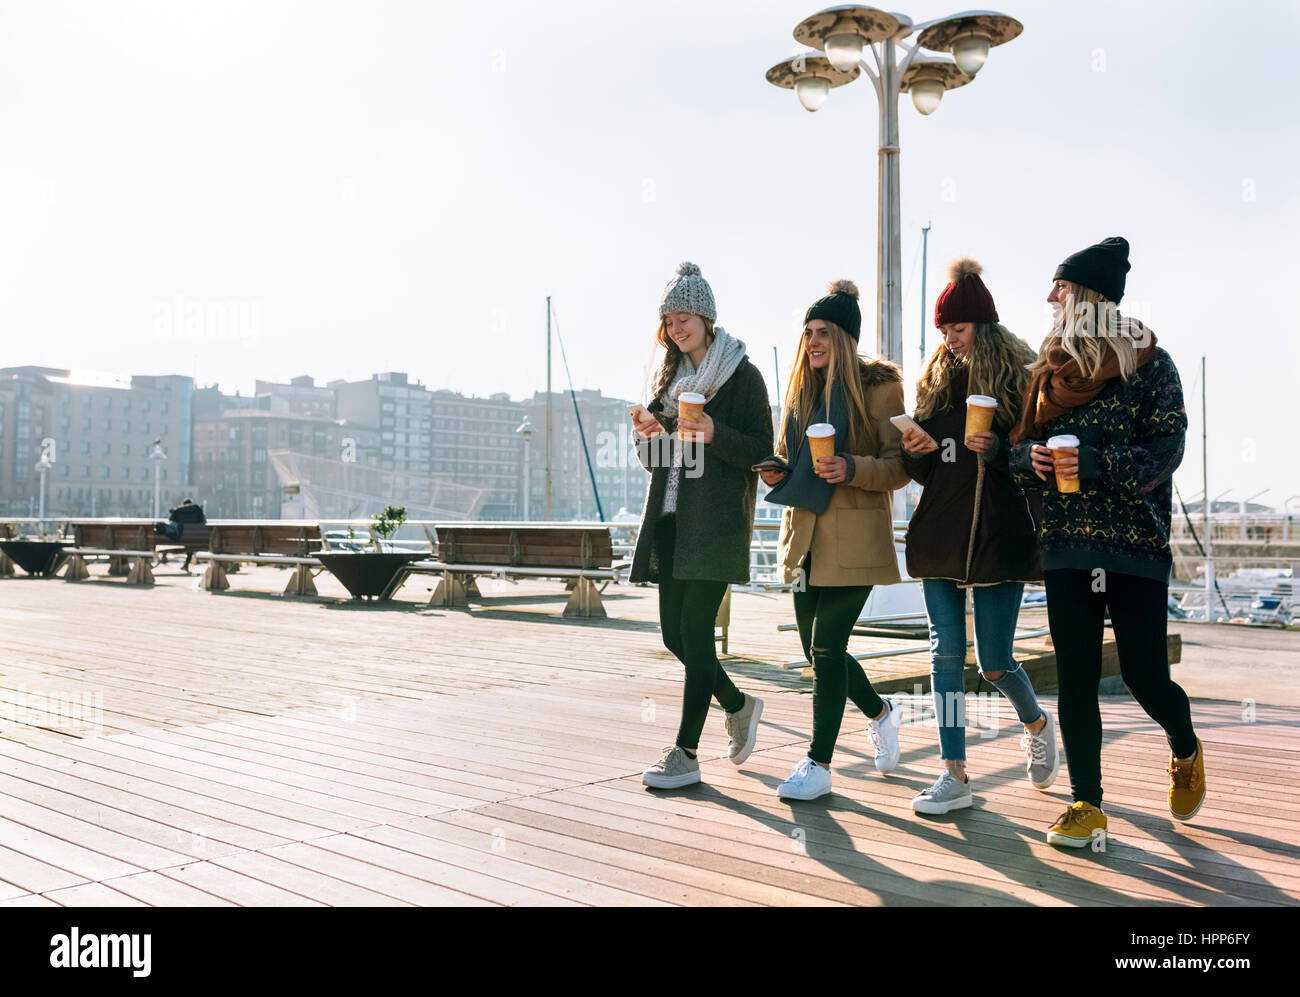 Four friends with coffee to go and cell phones walking on promenade in winter - Stock Image